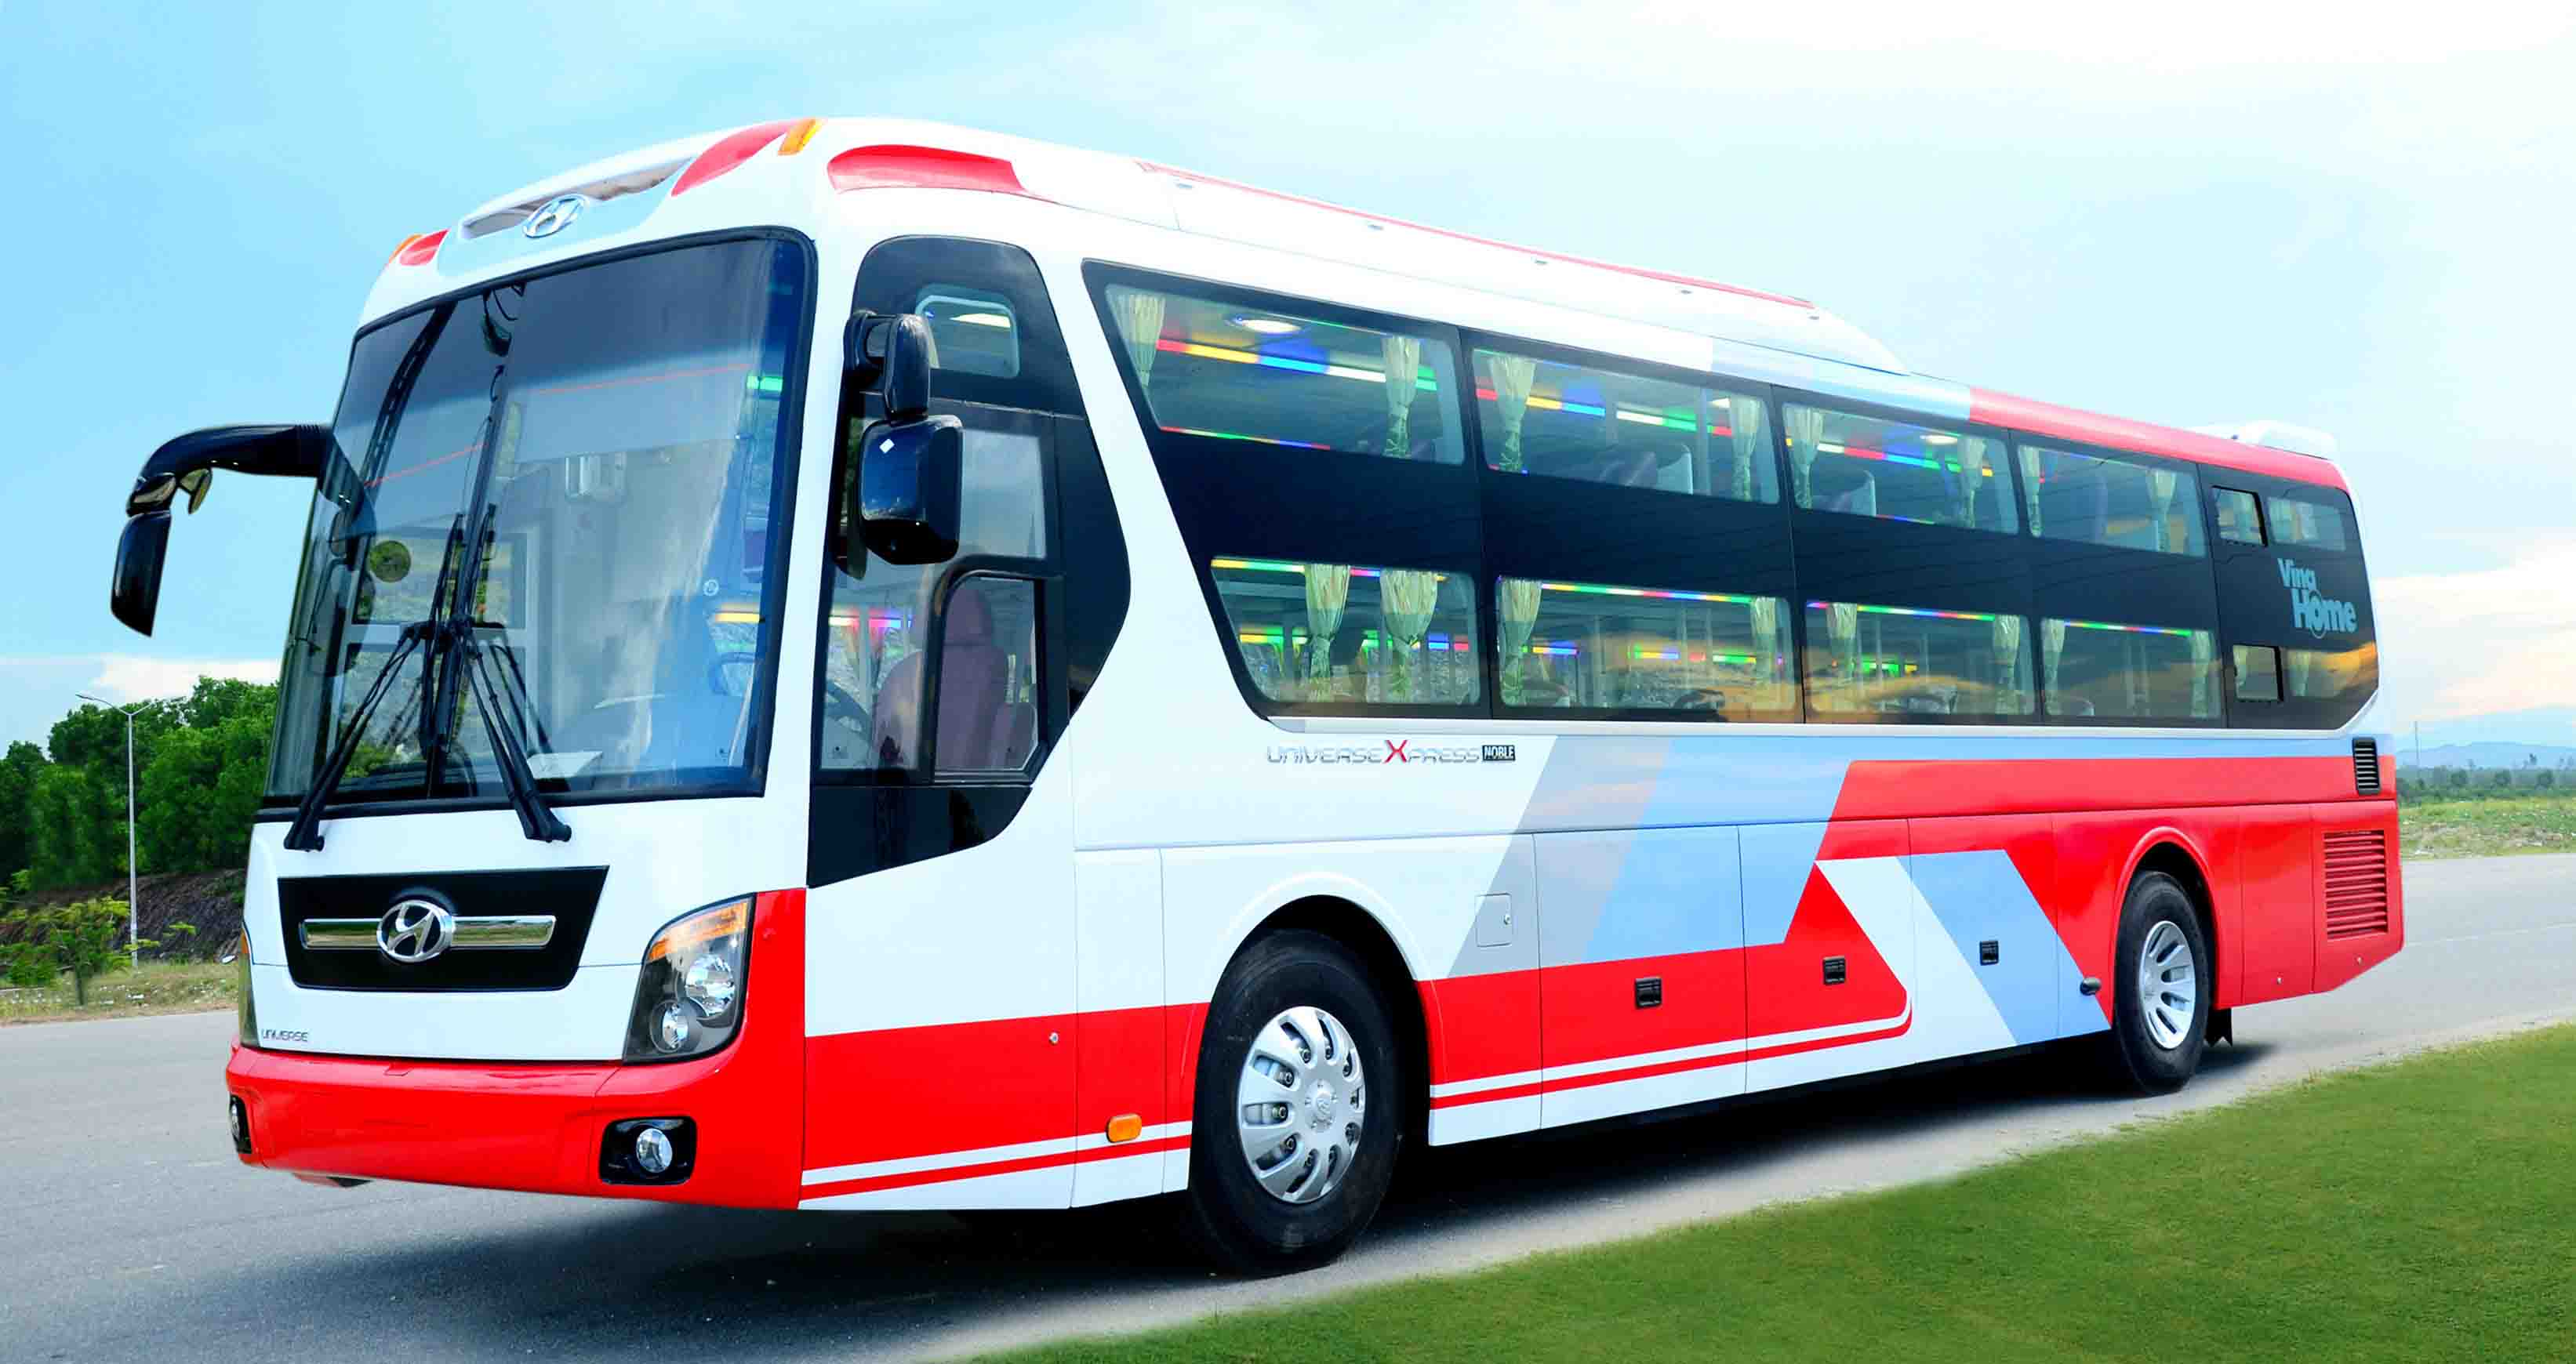 DAILY OPEN BUS VIET NAM